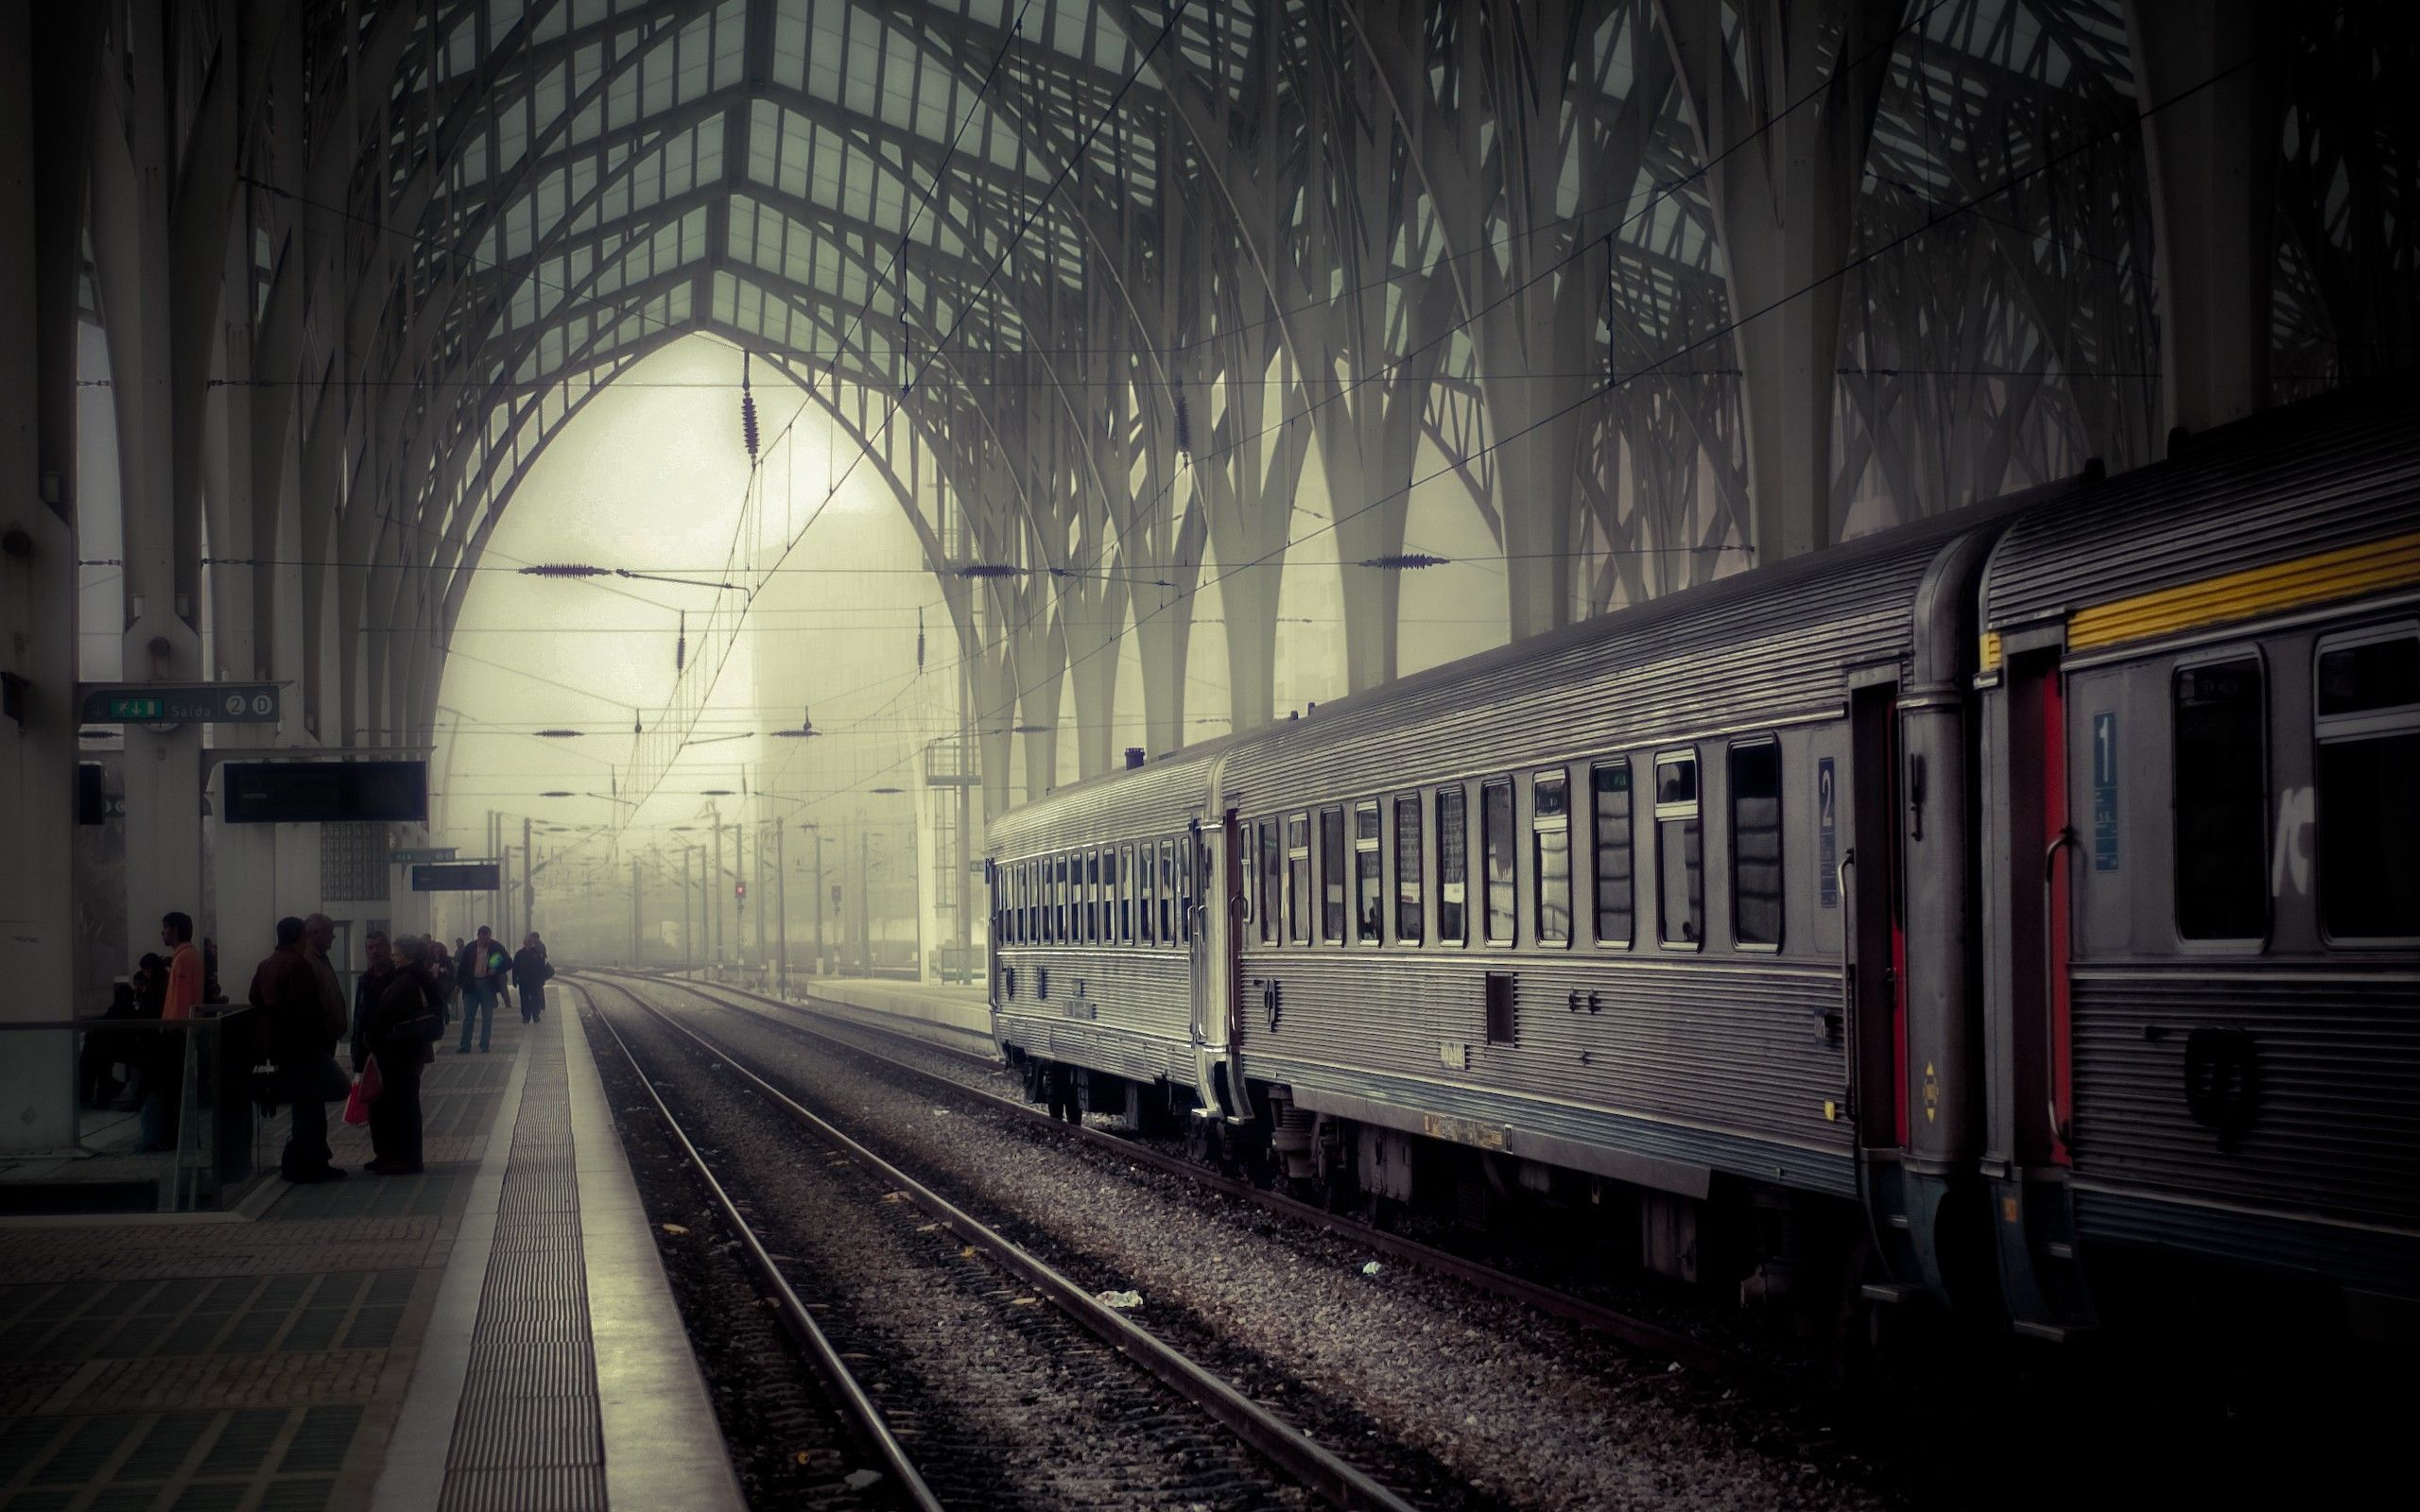 Train Station Wallpapers Top Free Train Station